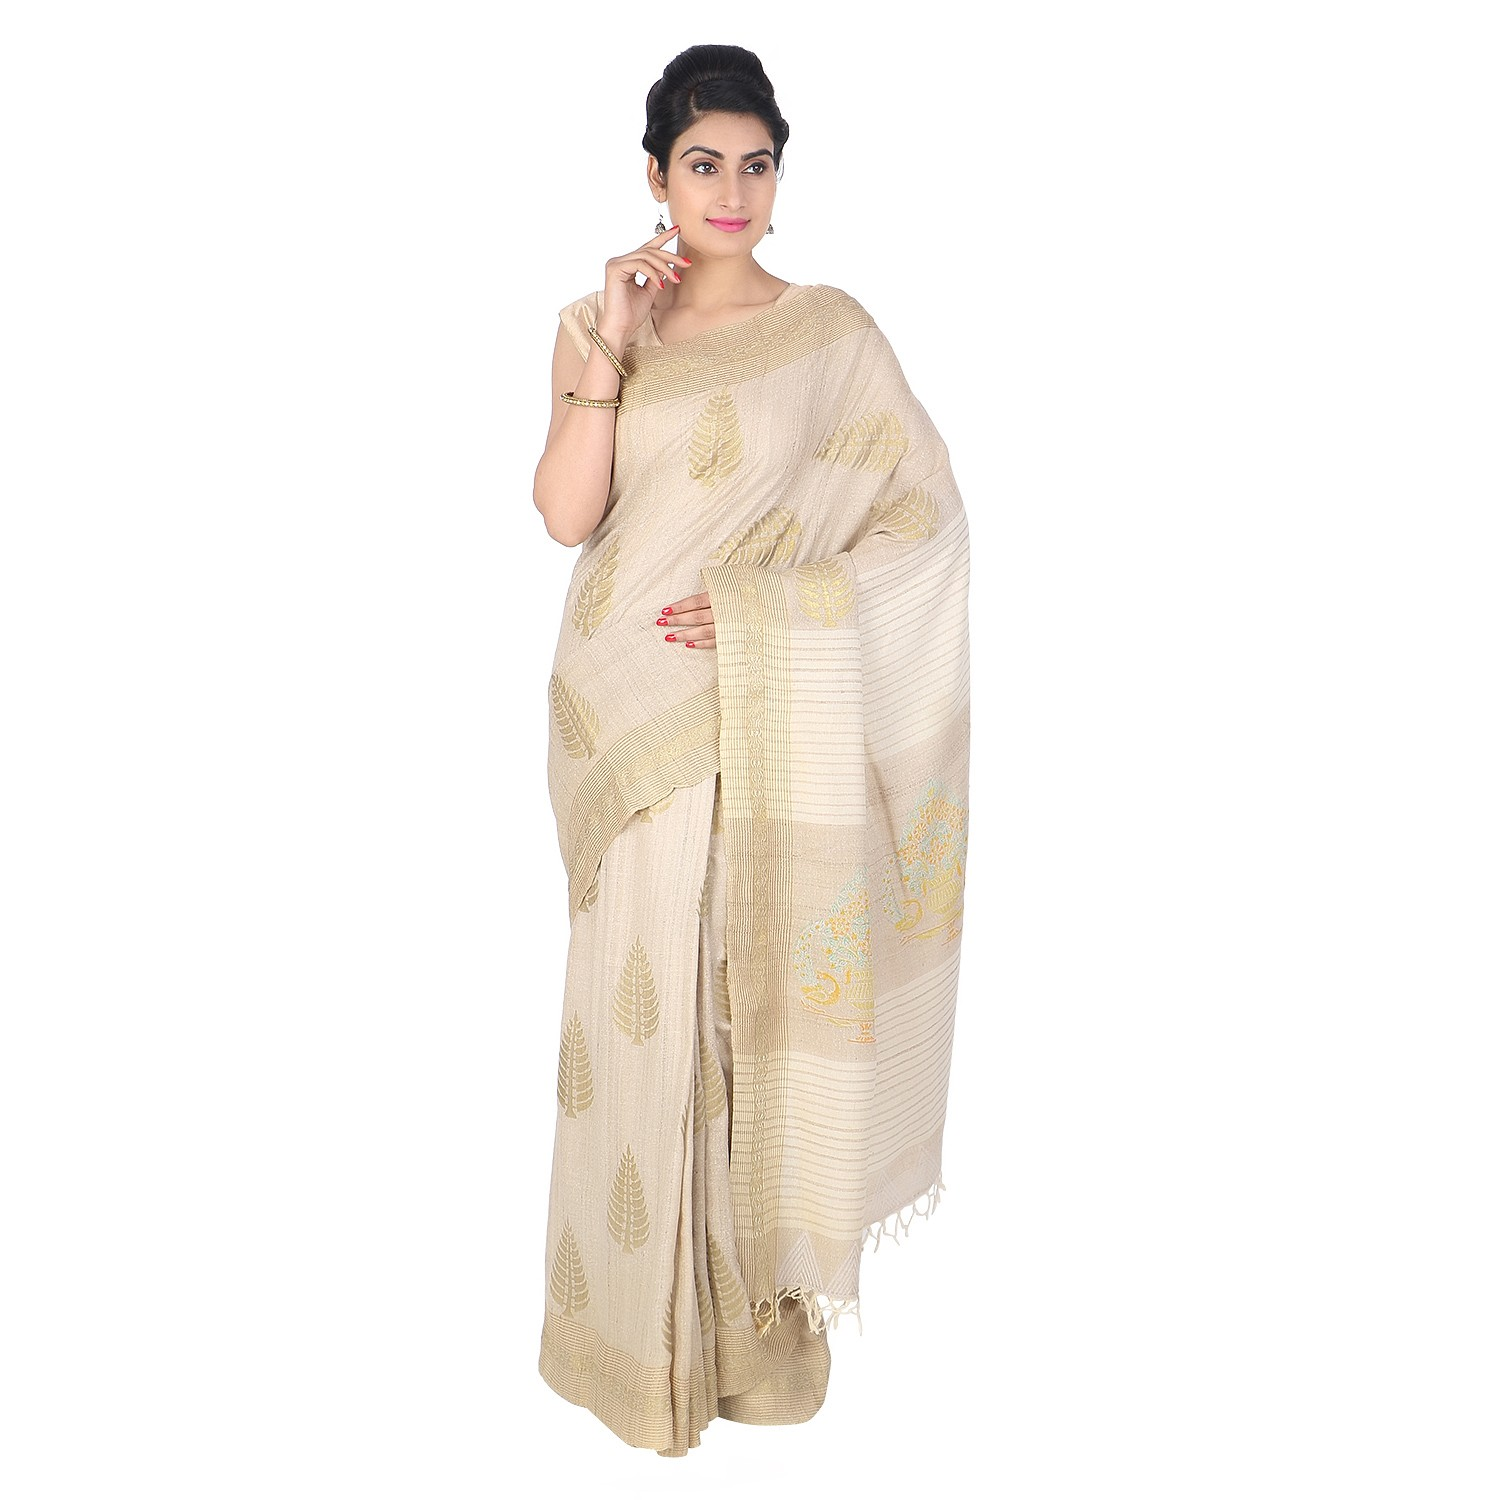 134ad20924634 Buy Authentic Cream Handmade Matka Tussar Silk Designer Saree-India Meets  India